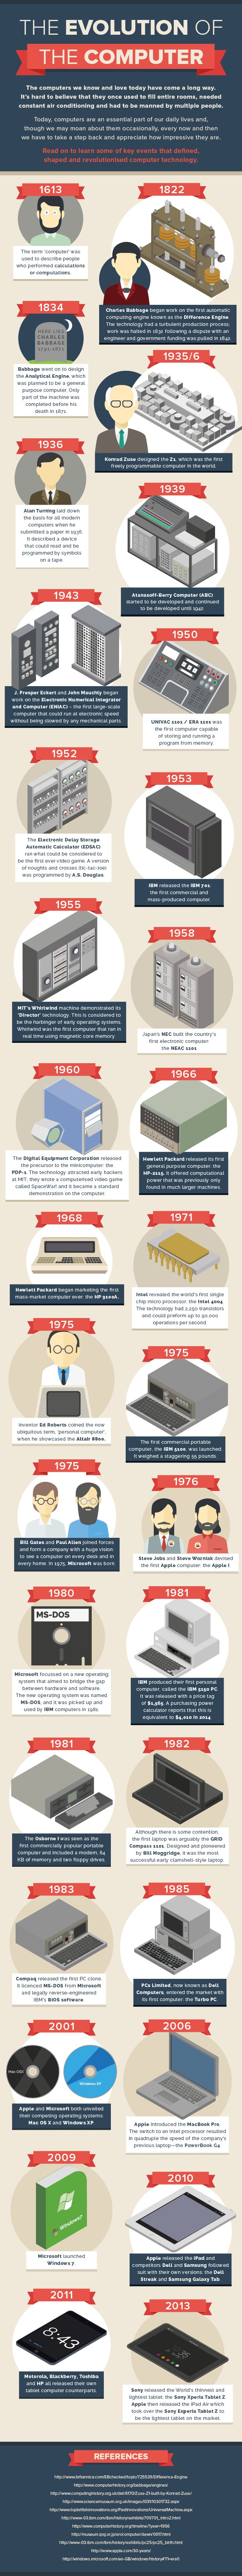 The Evolution of the Computer (Infographic)